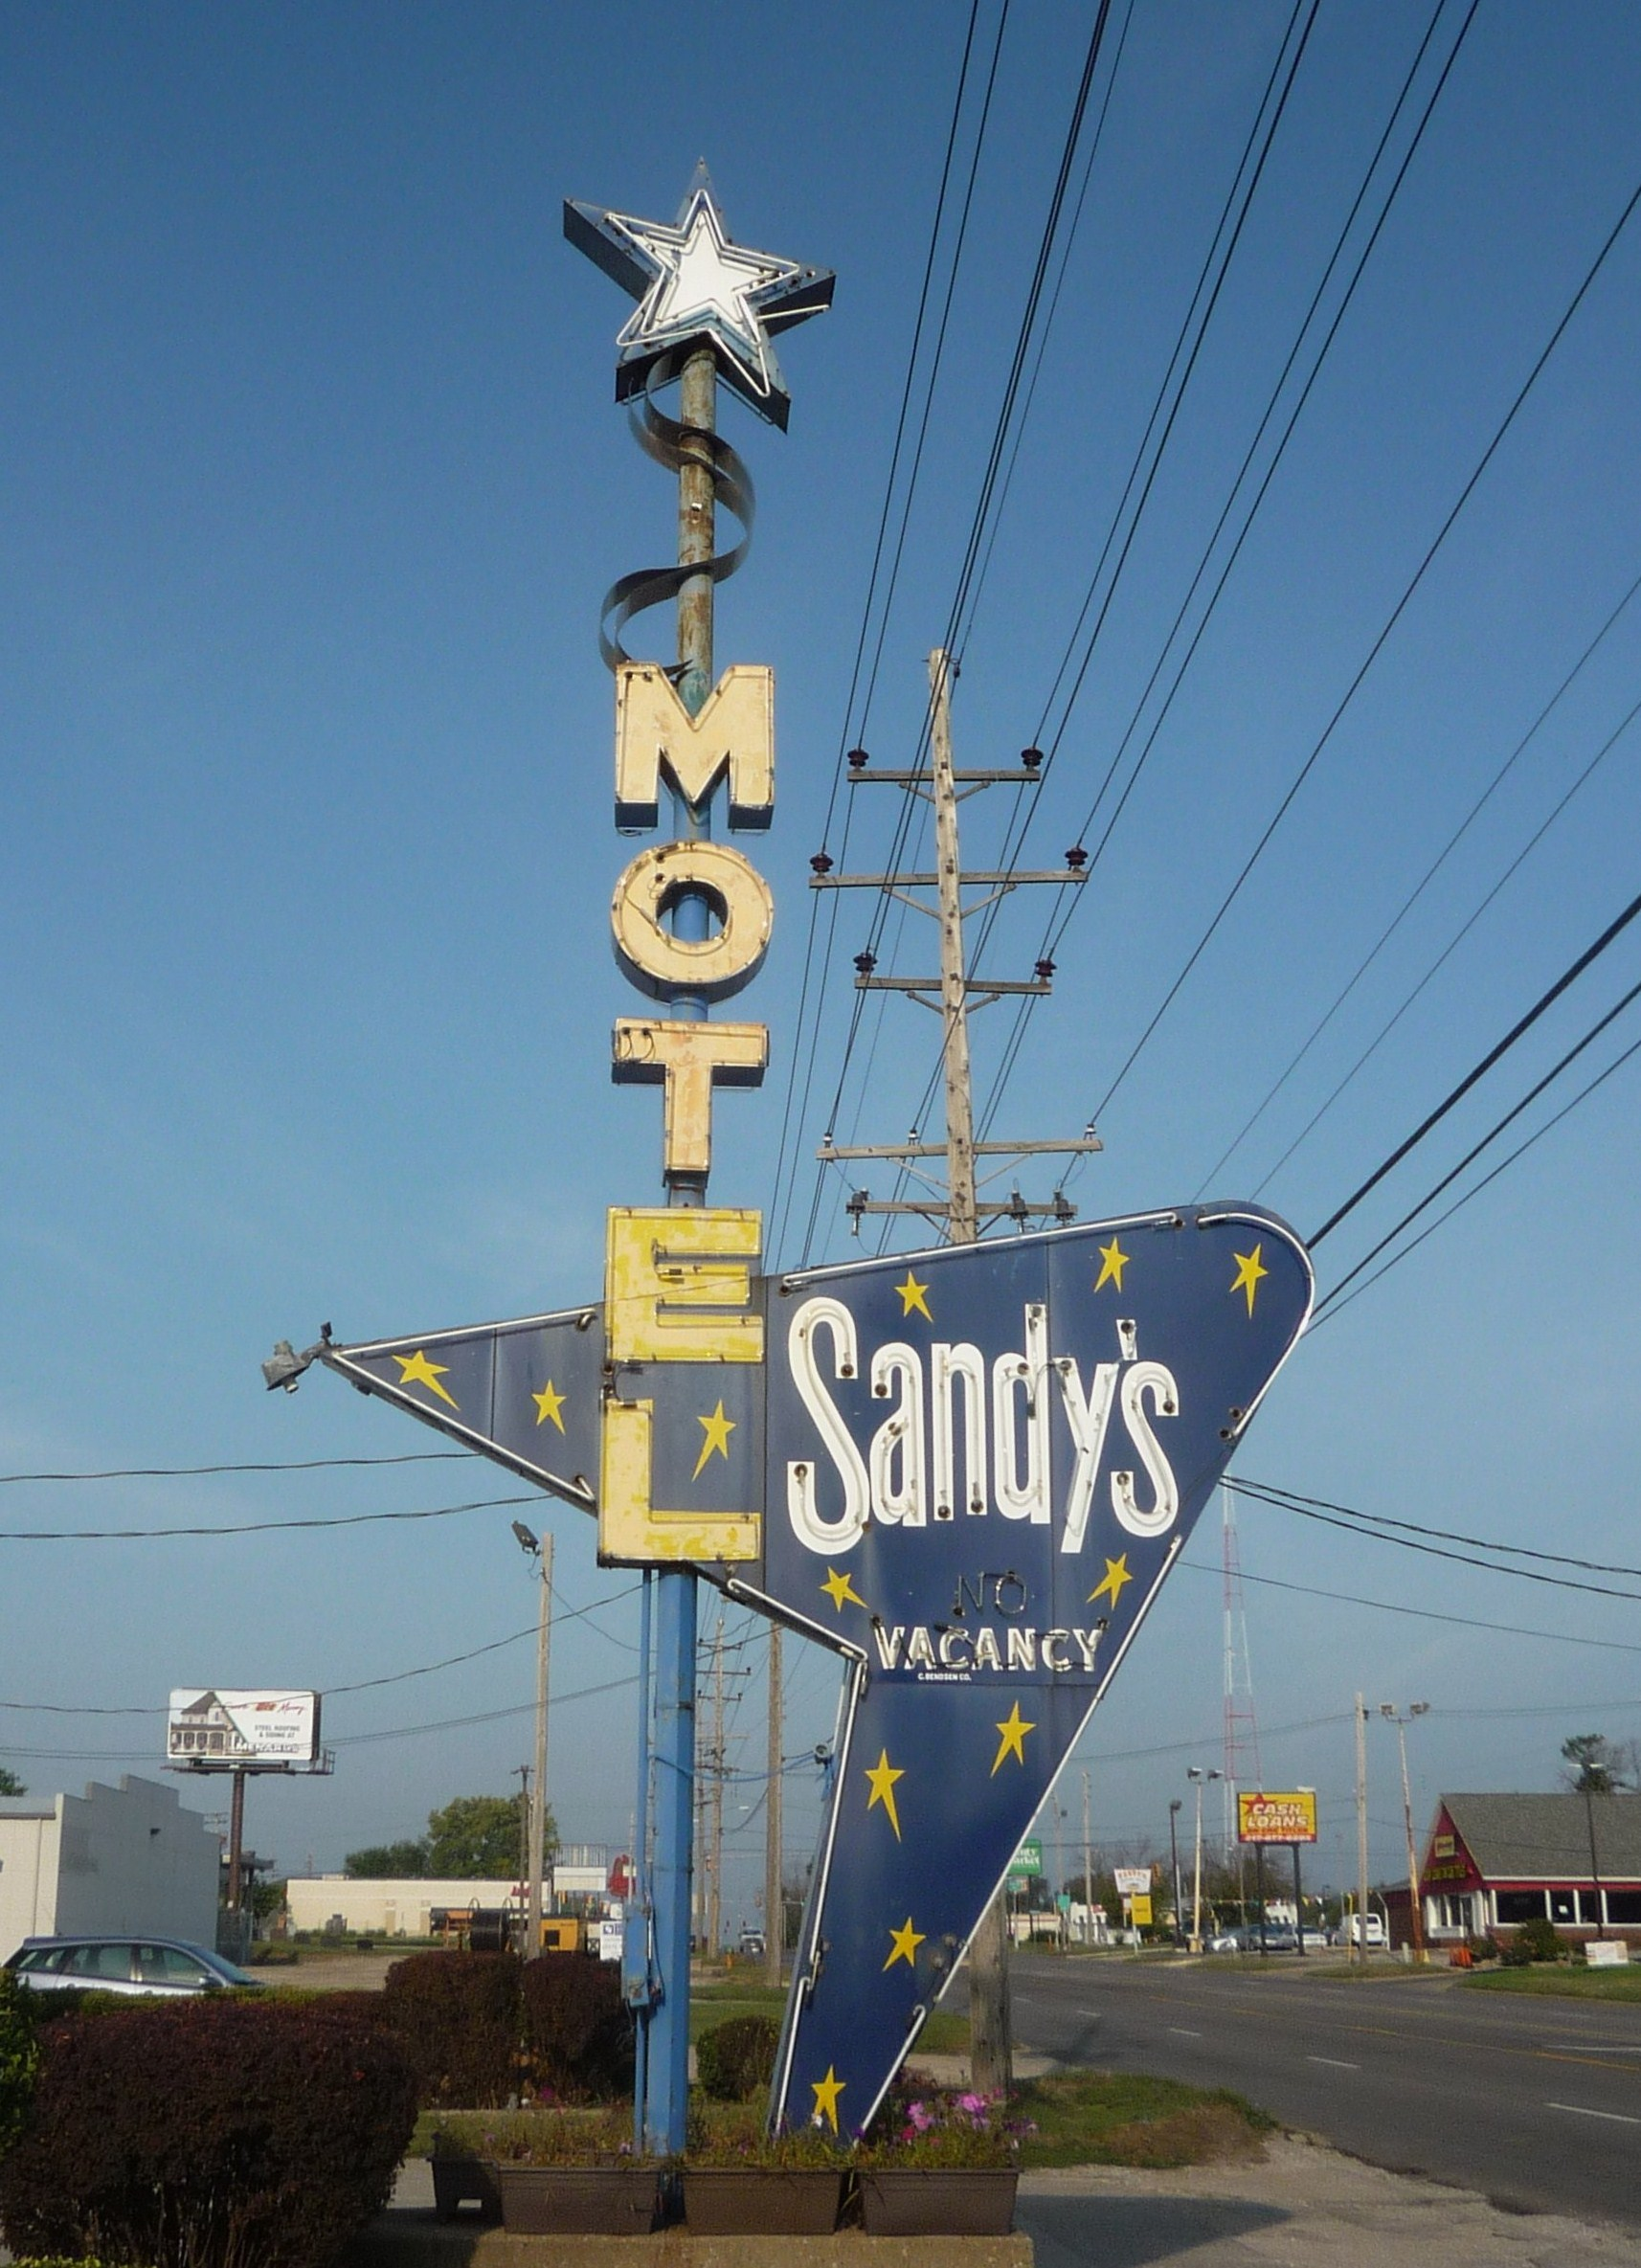 Sandy's Motel - 1675 East Pershing Road, Decatur, Illinois U.S.A. - September 2, 2017